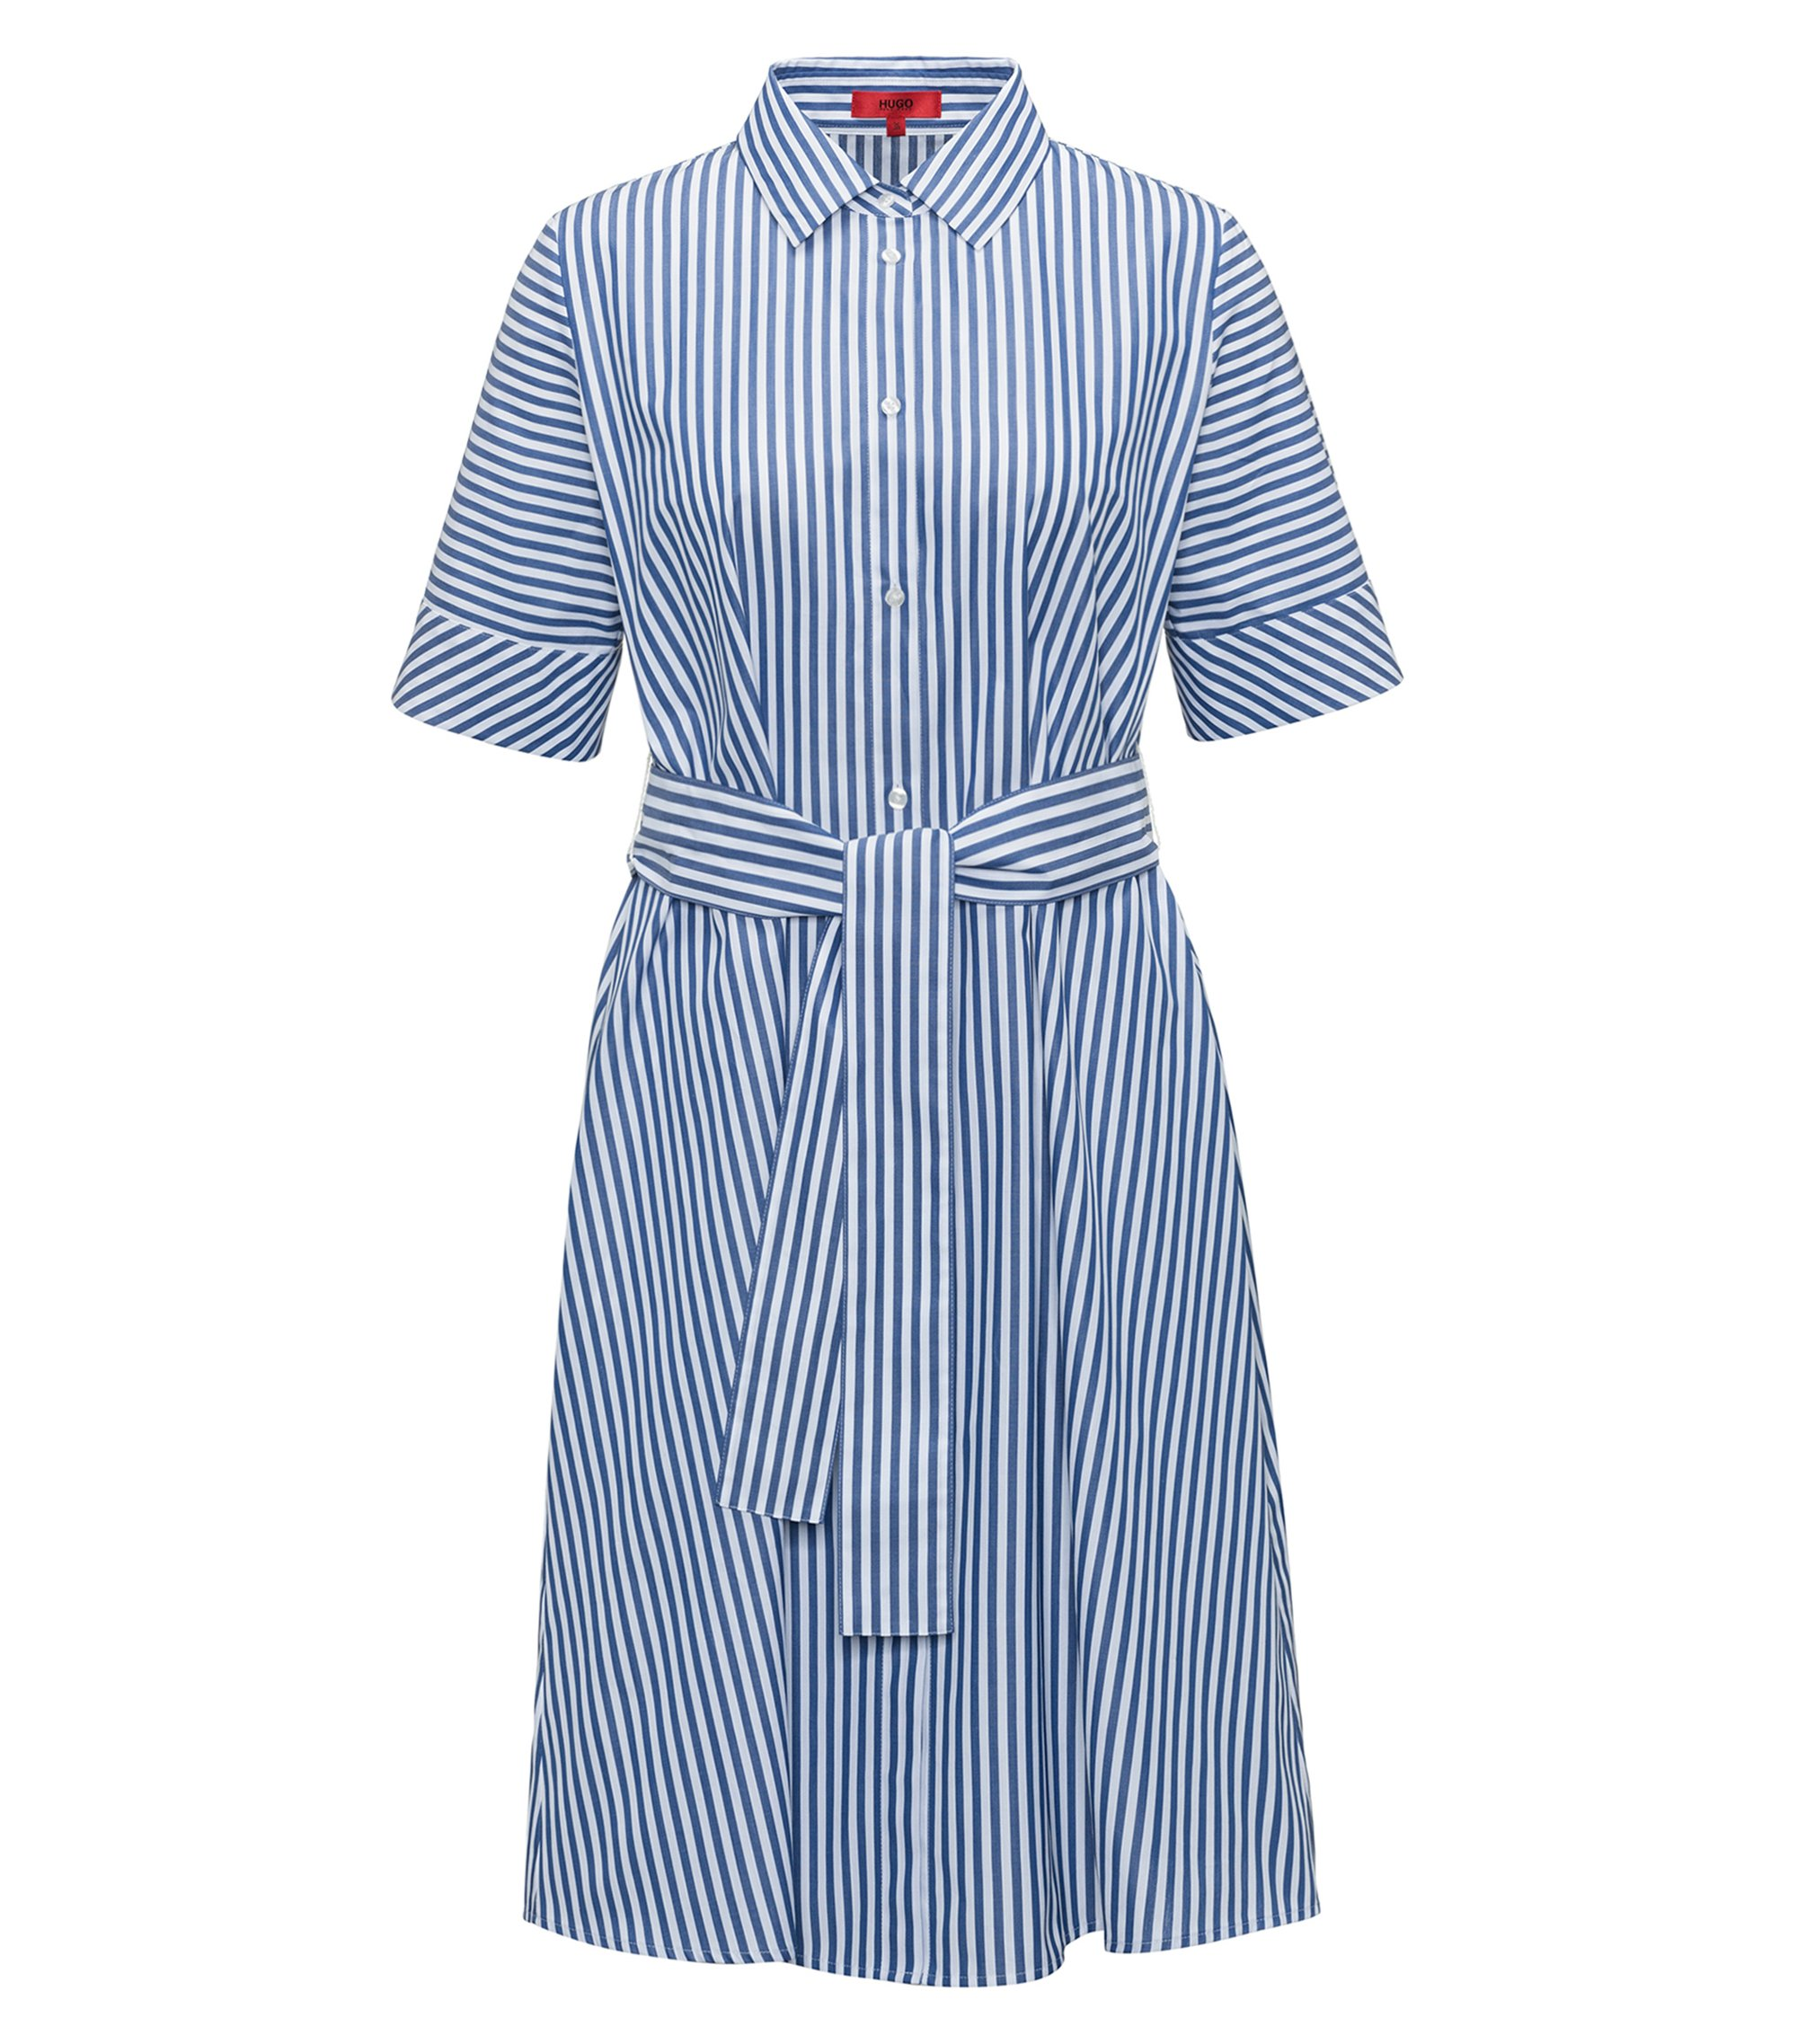 A-line shirt dress in striped cotton, Patterned